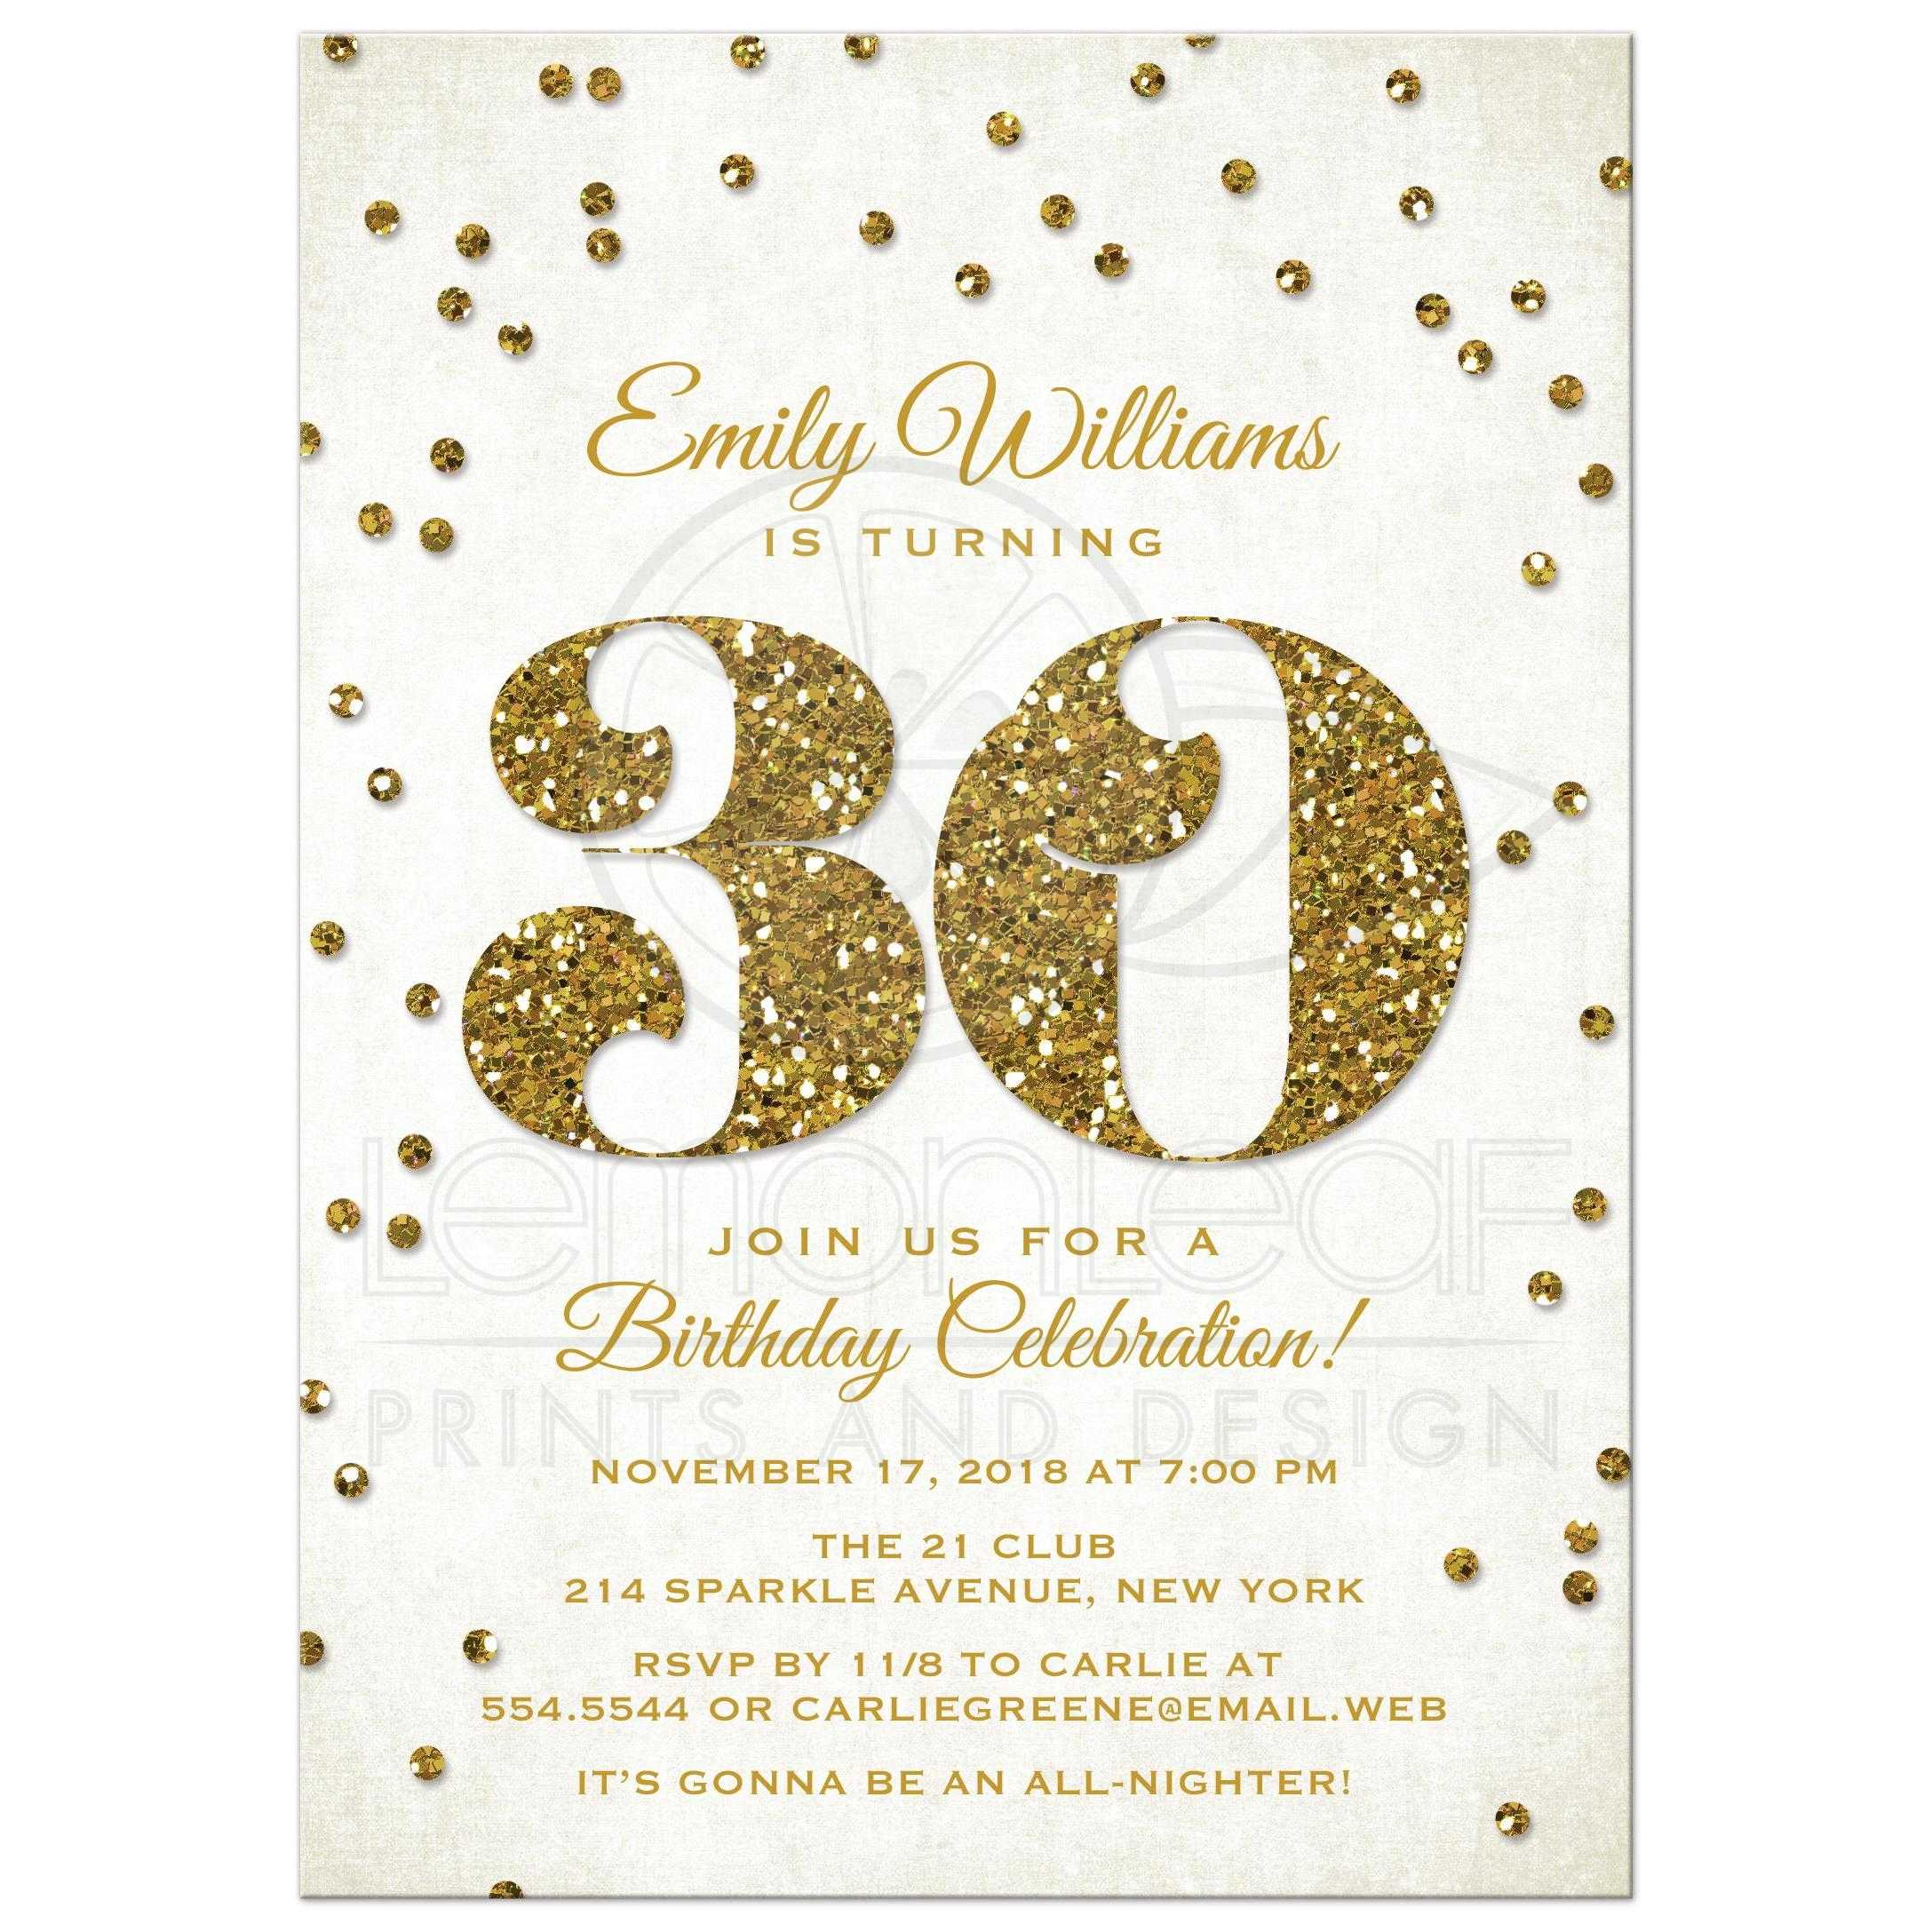 30th birthday party invite gallery invitation templates free download gold calligraphy confetti 30th birthday party invitation from stopboris Choice Image